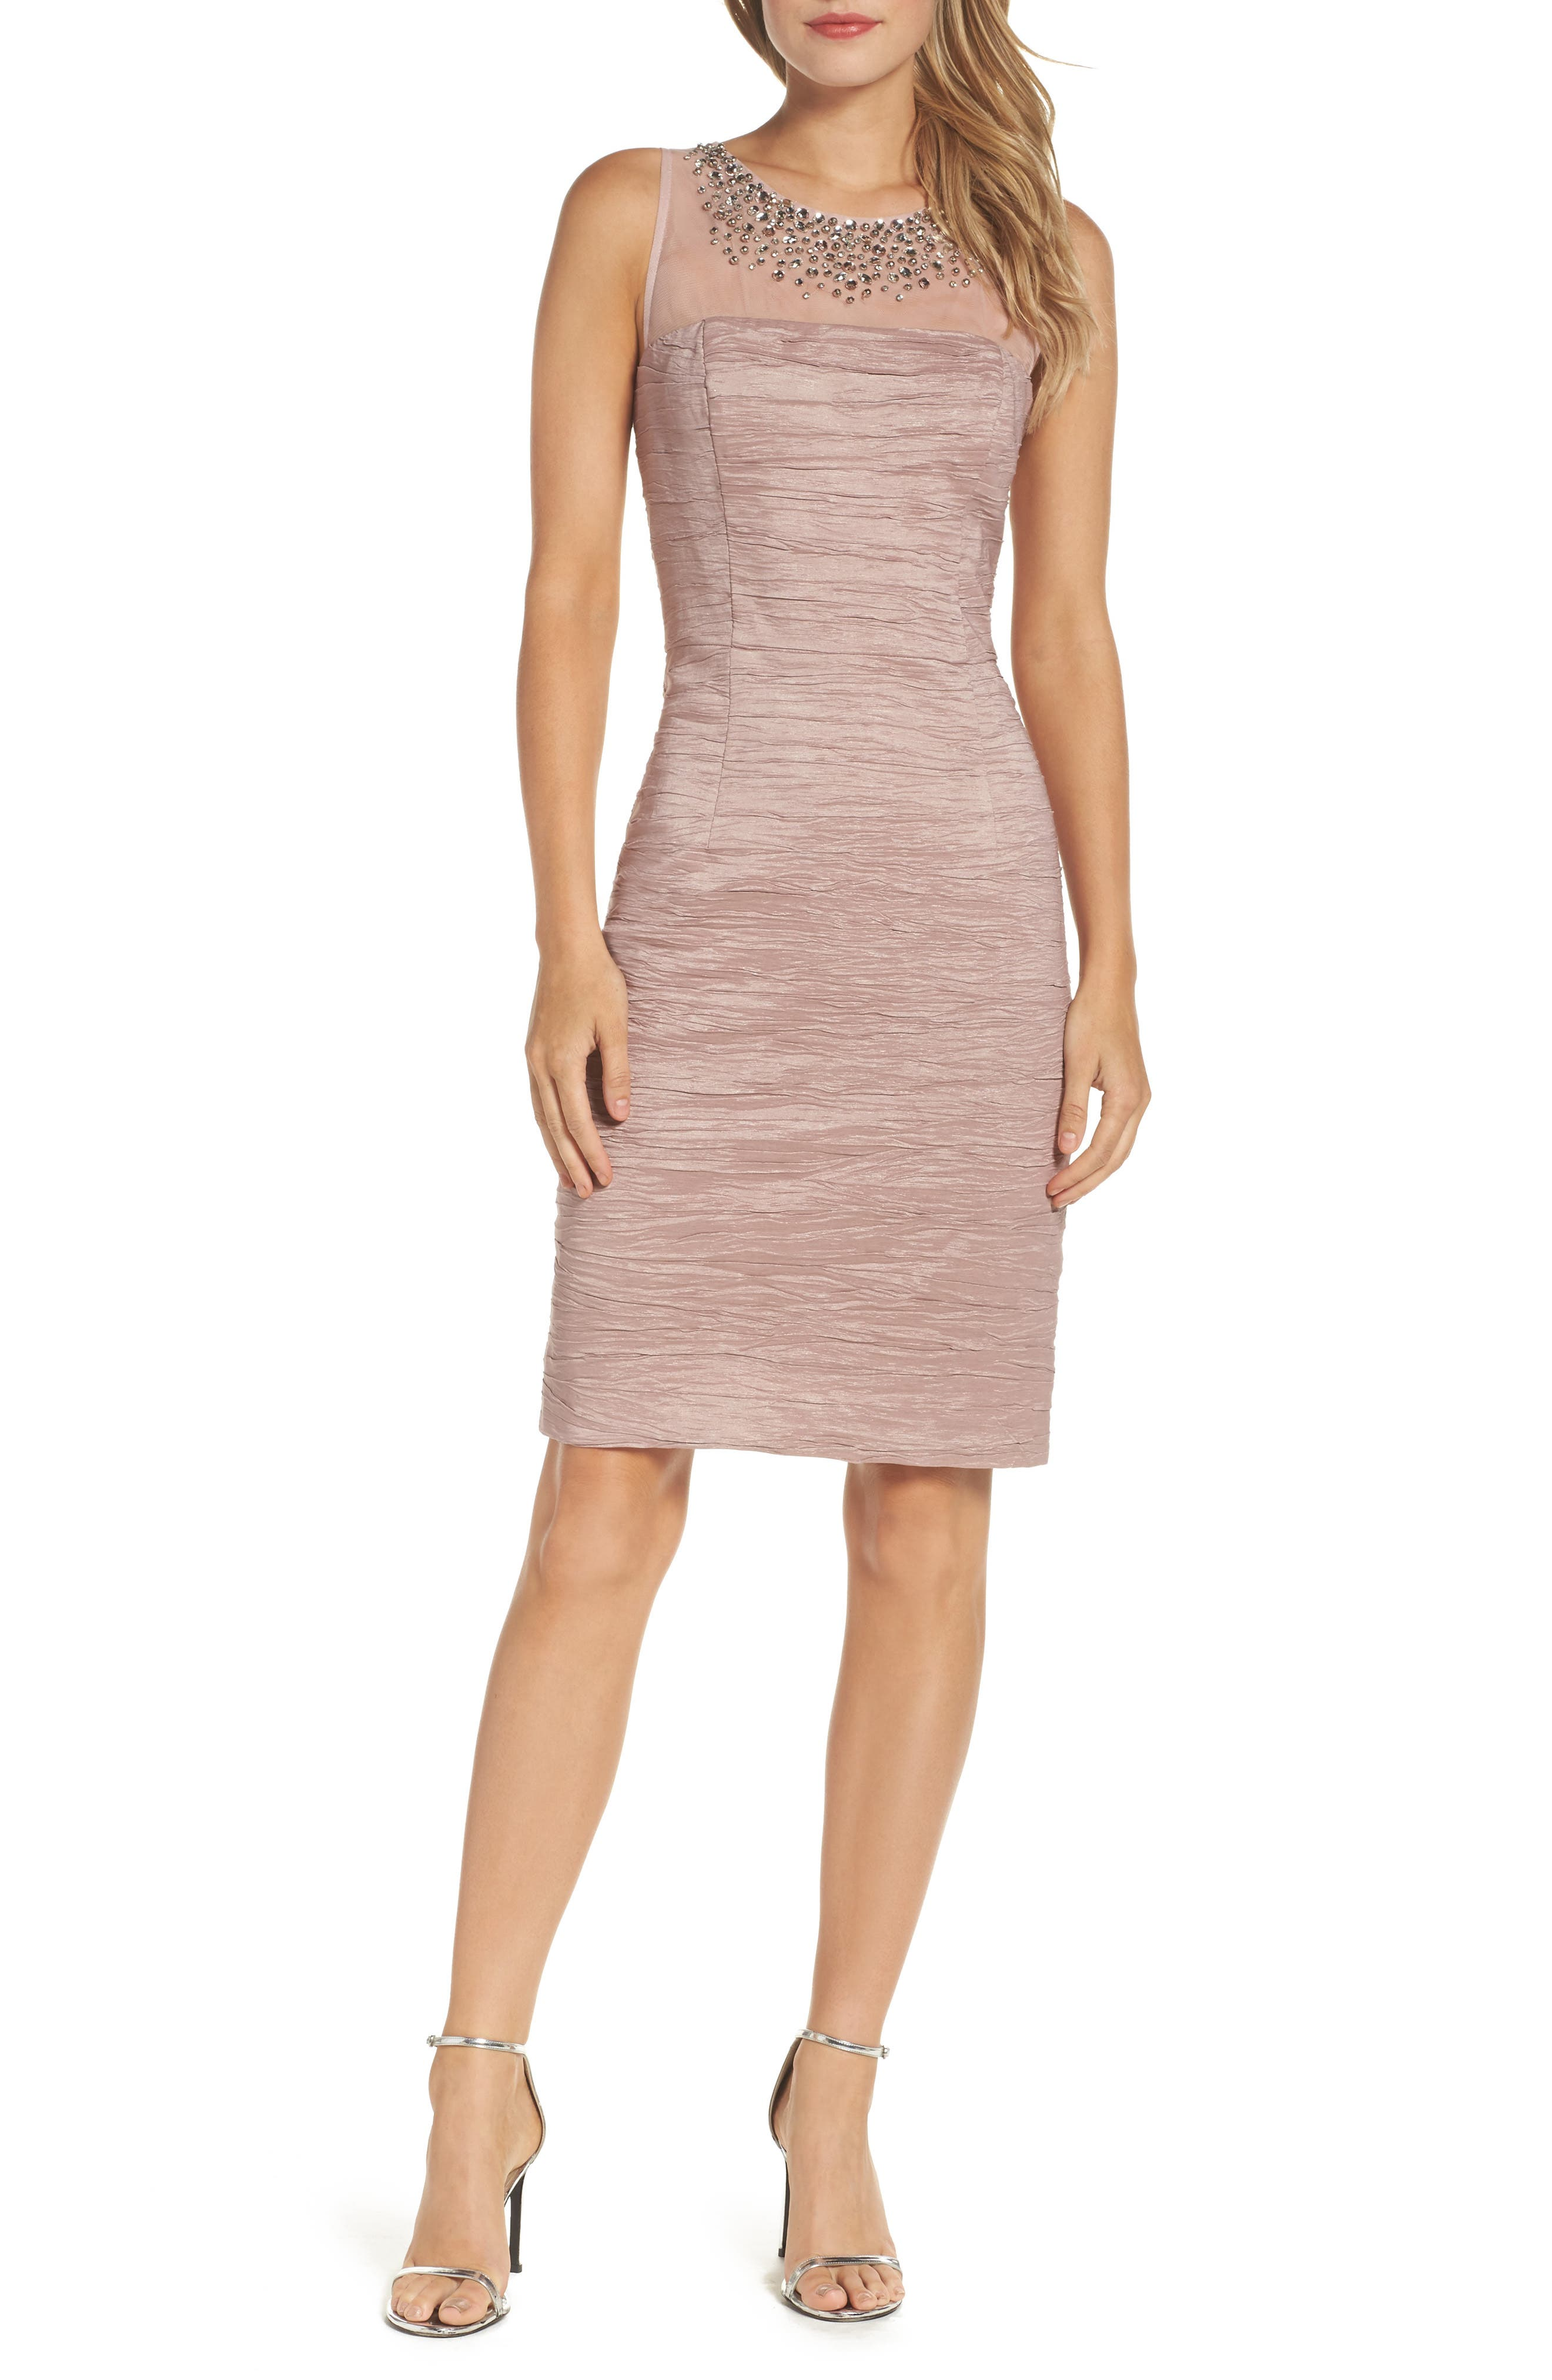 Alternate Image 1 Selected - Eliza J Metallic Sheath Dress (Regular & Petite)